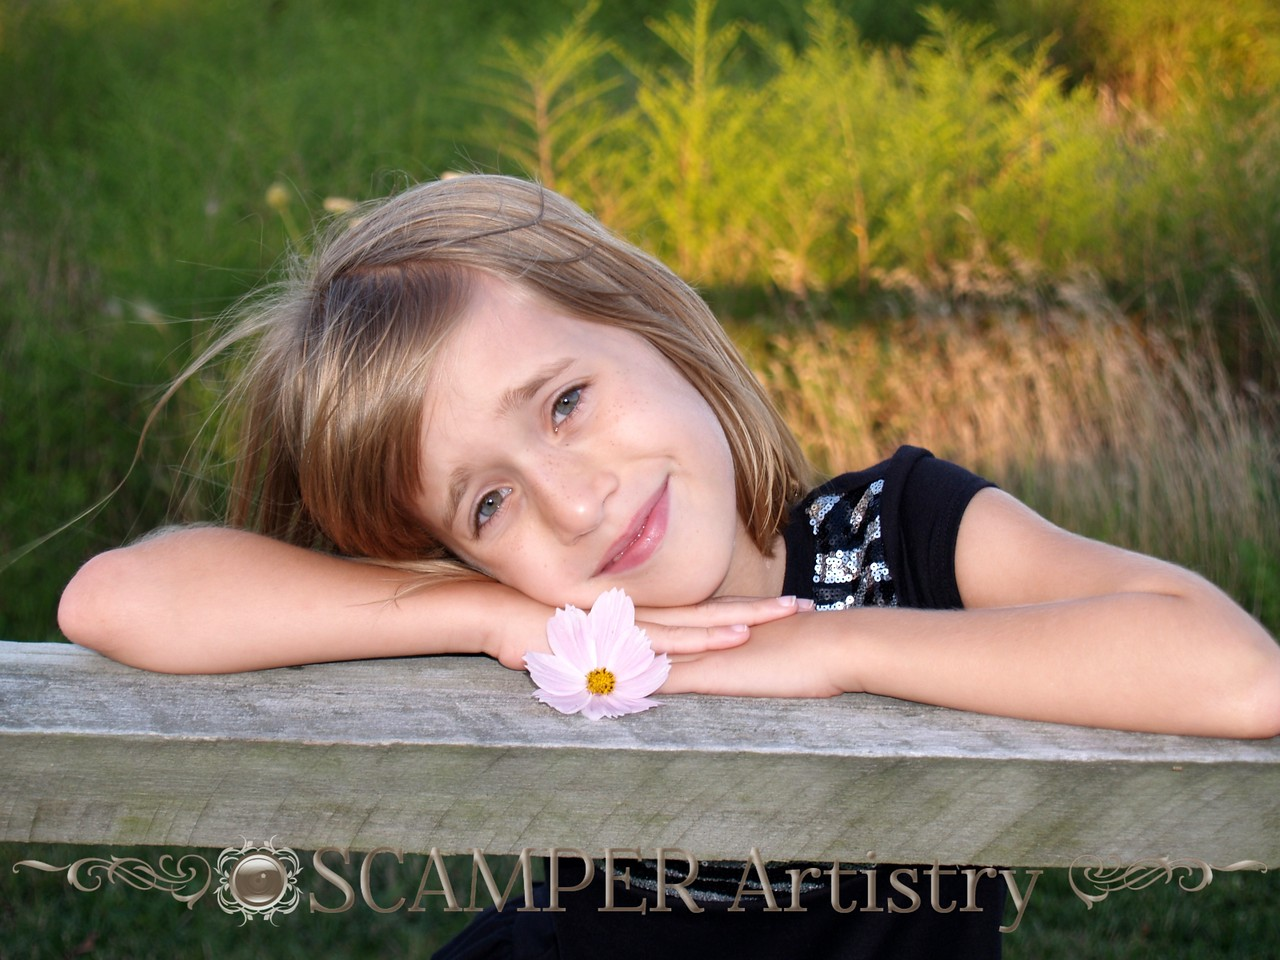 20090820 - Lilly - pose 24 - See full post here:  http://scamperartistry.blogspot.com/2010/05/faces-flowers.html